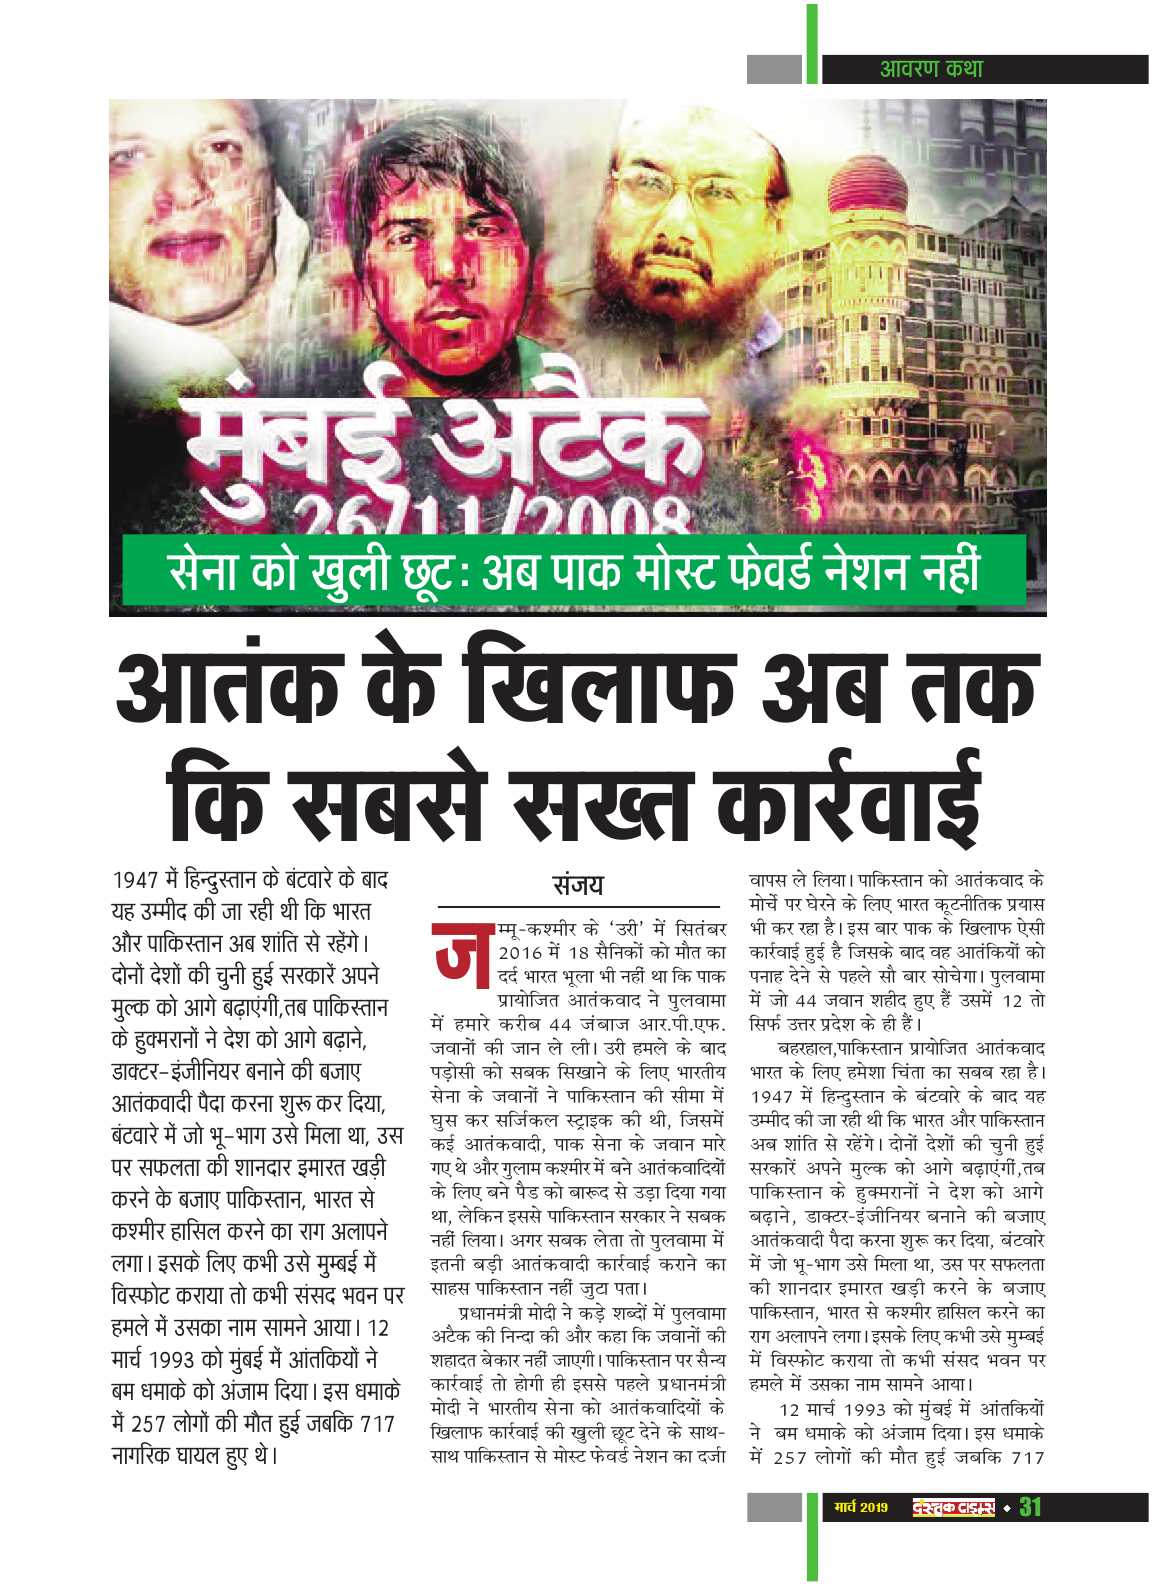 March 2019_Dastak Times new file33